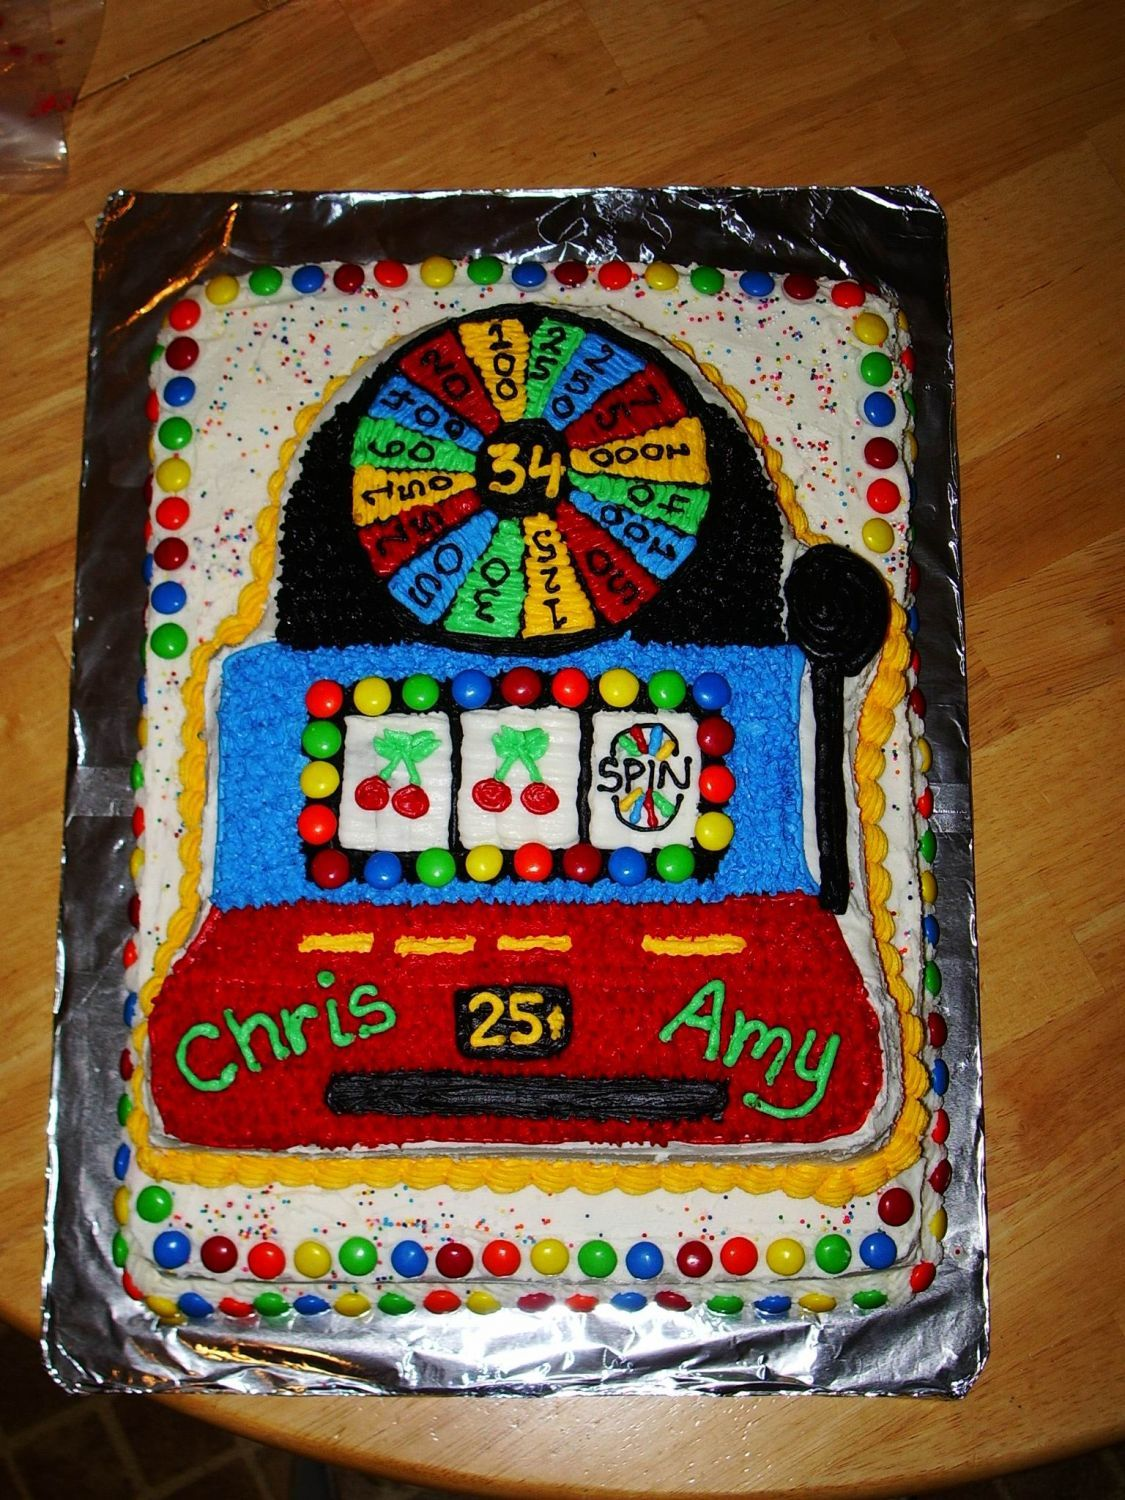 Pin on cakes his